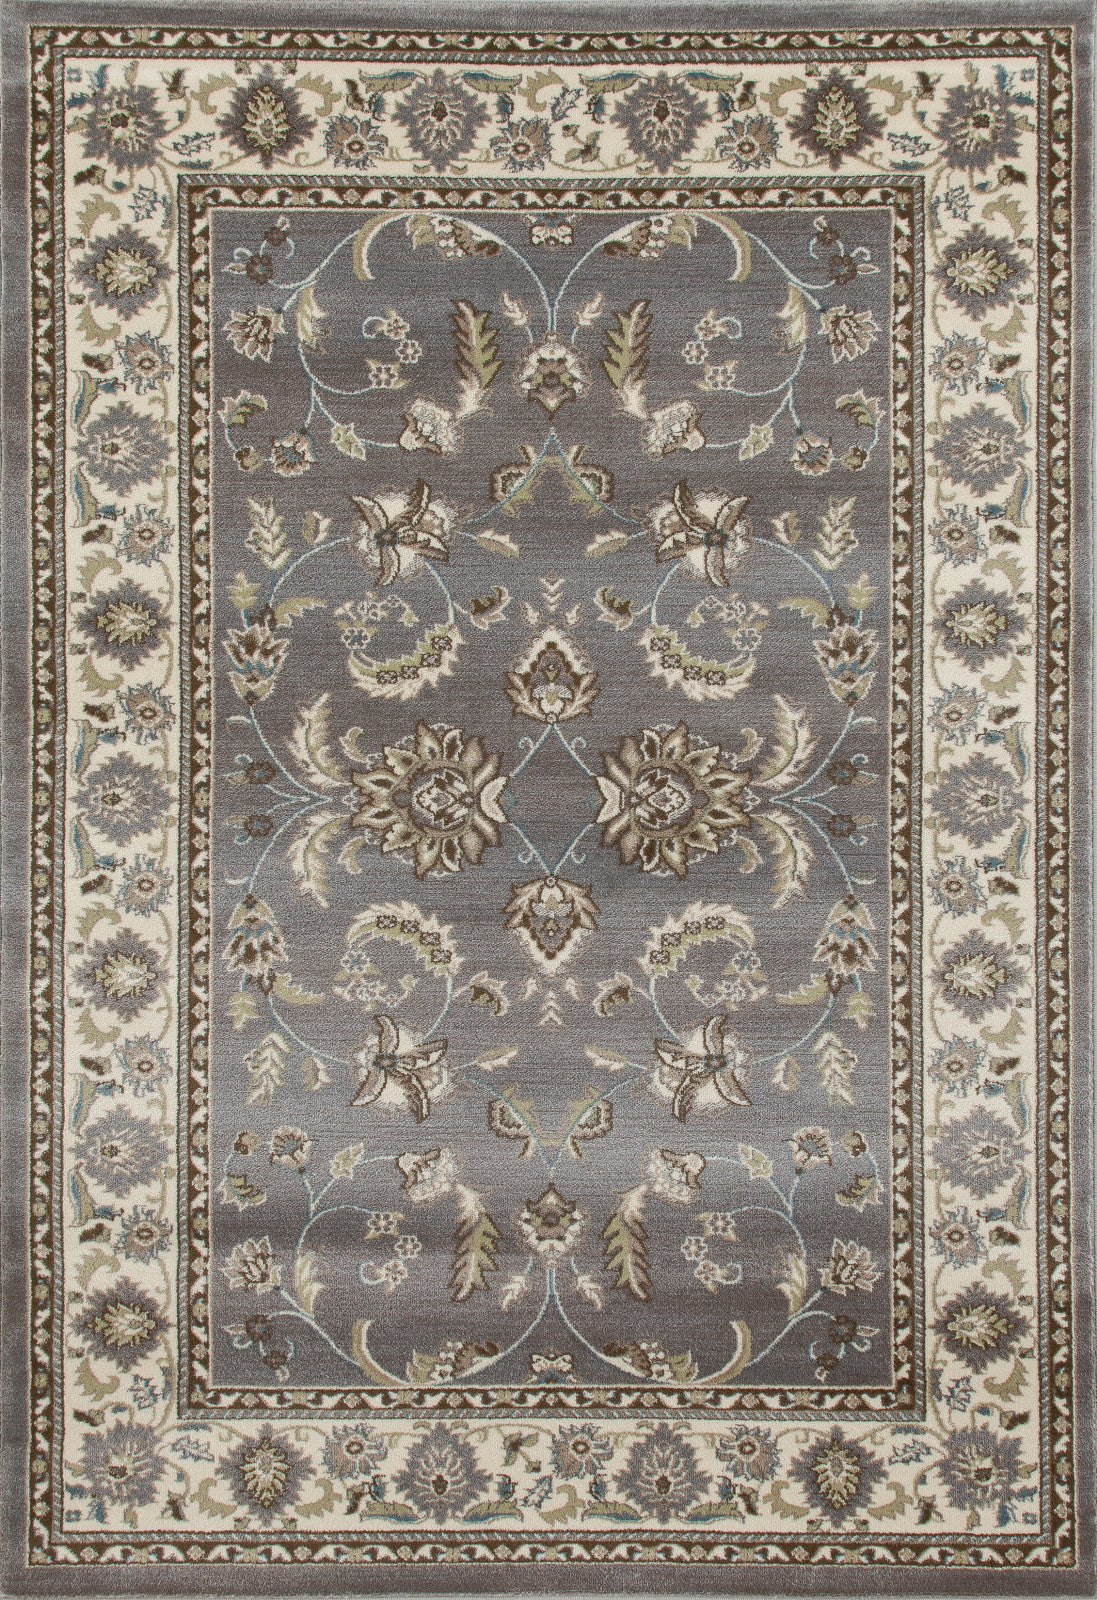 Art Carpet Arabella AR-00-0140 Beige Area Rug main image